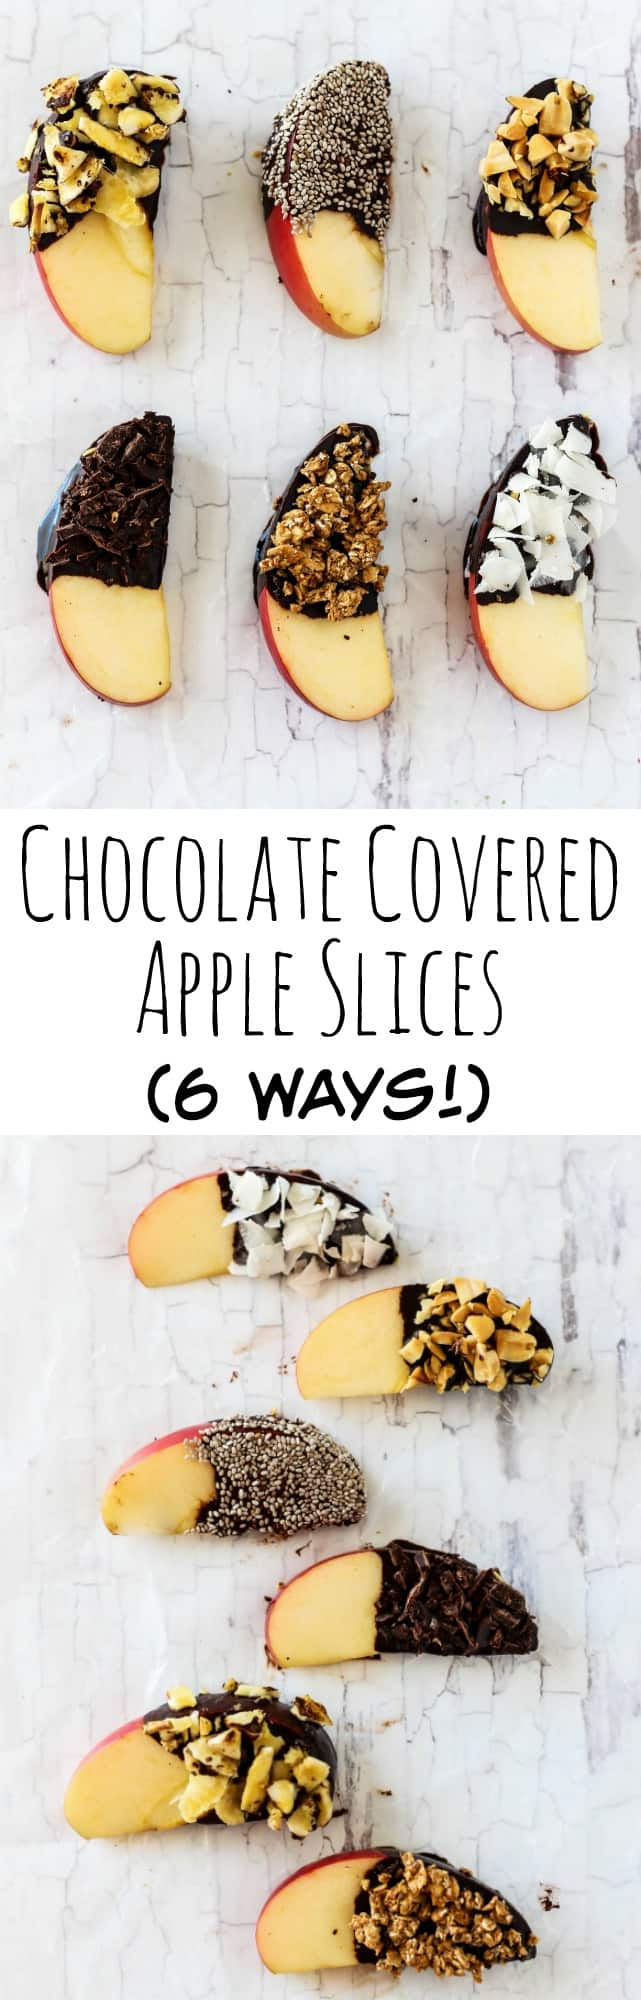 Your kids will love getting hands-on at snack time making these Chocolate Covered Apple Slices! There's 6 ways to make them with fun & tasty toppings.